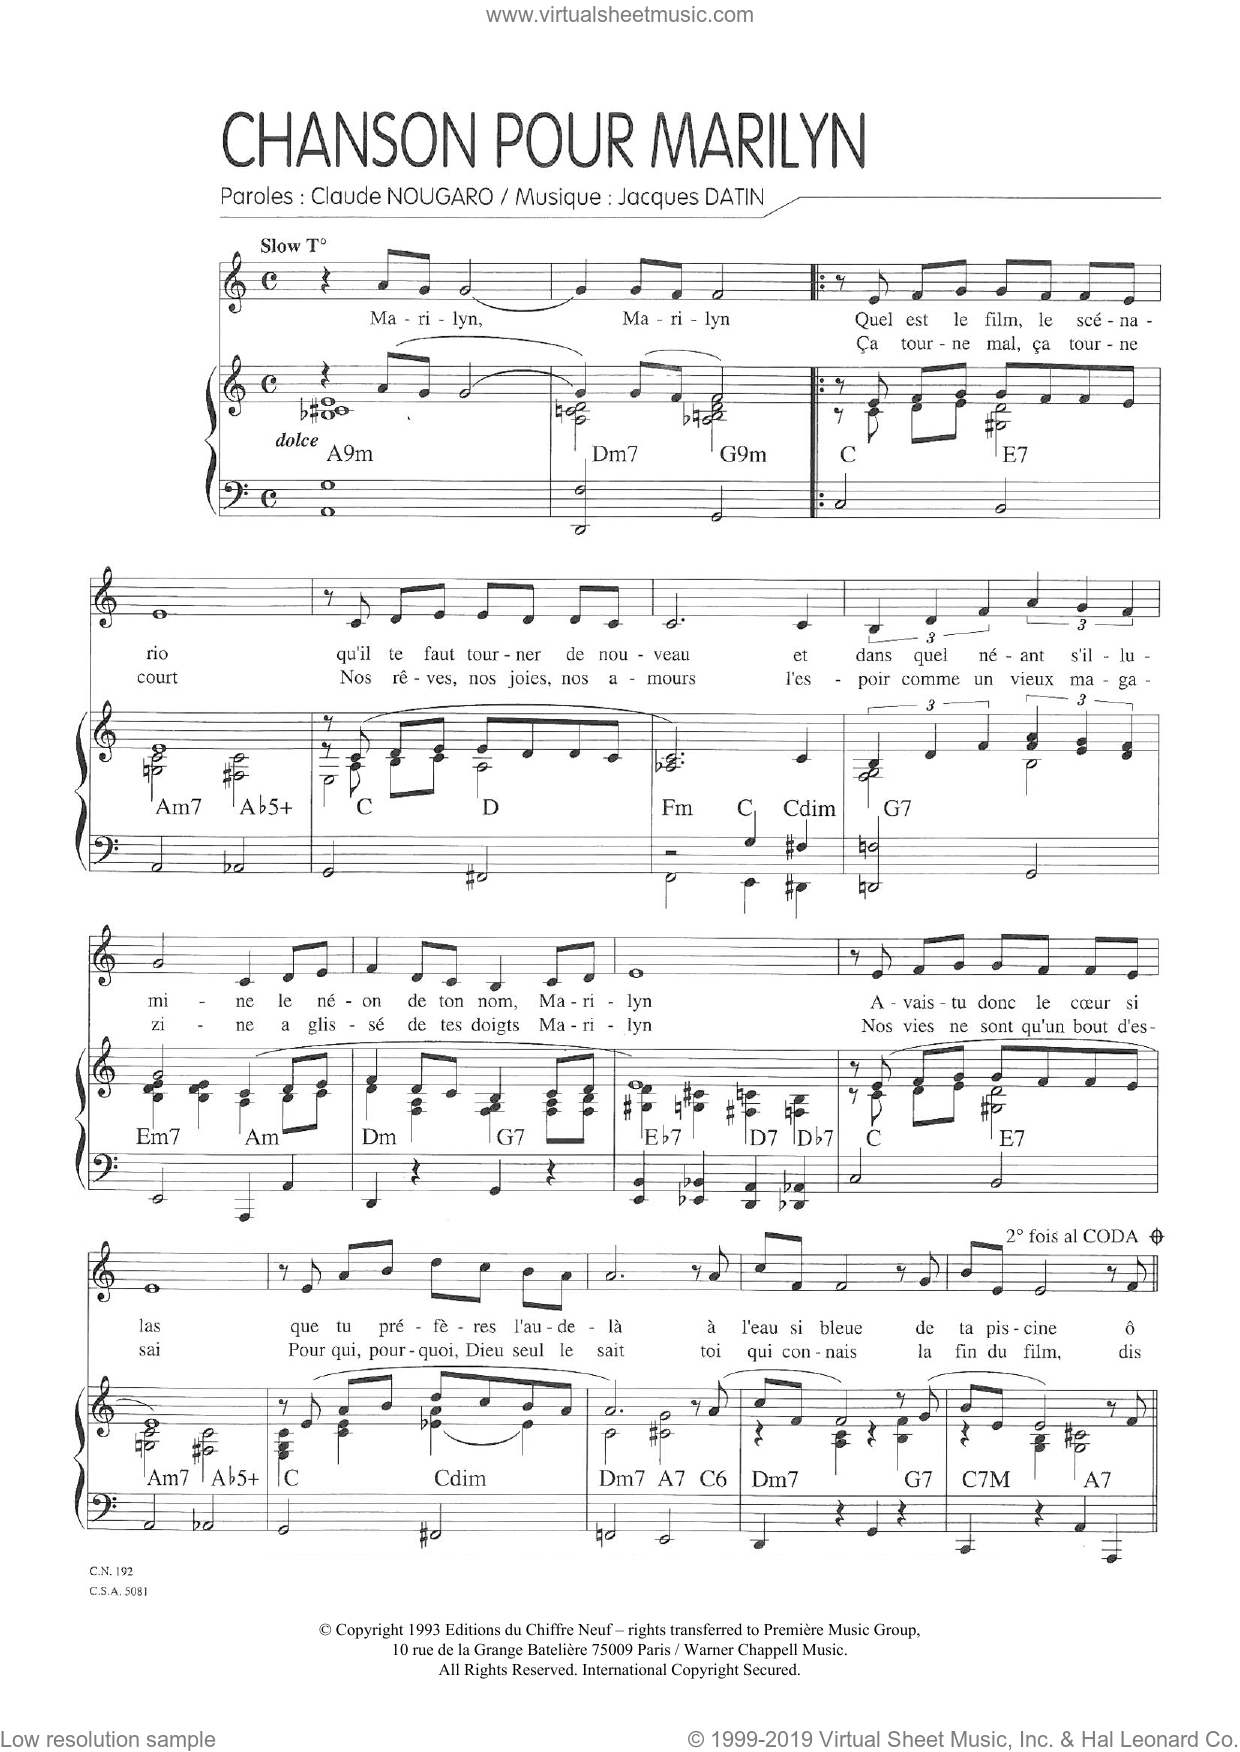 Chanson Pour Marilyn sheet music for voice and piano by Claude Nougaro